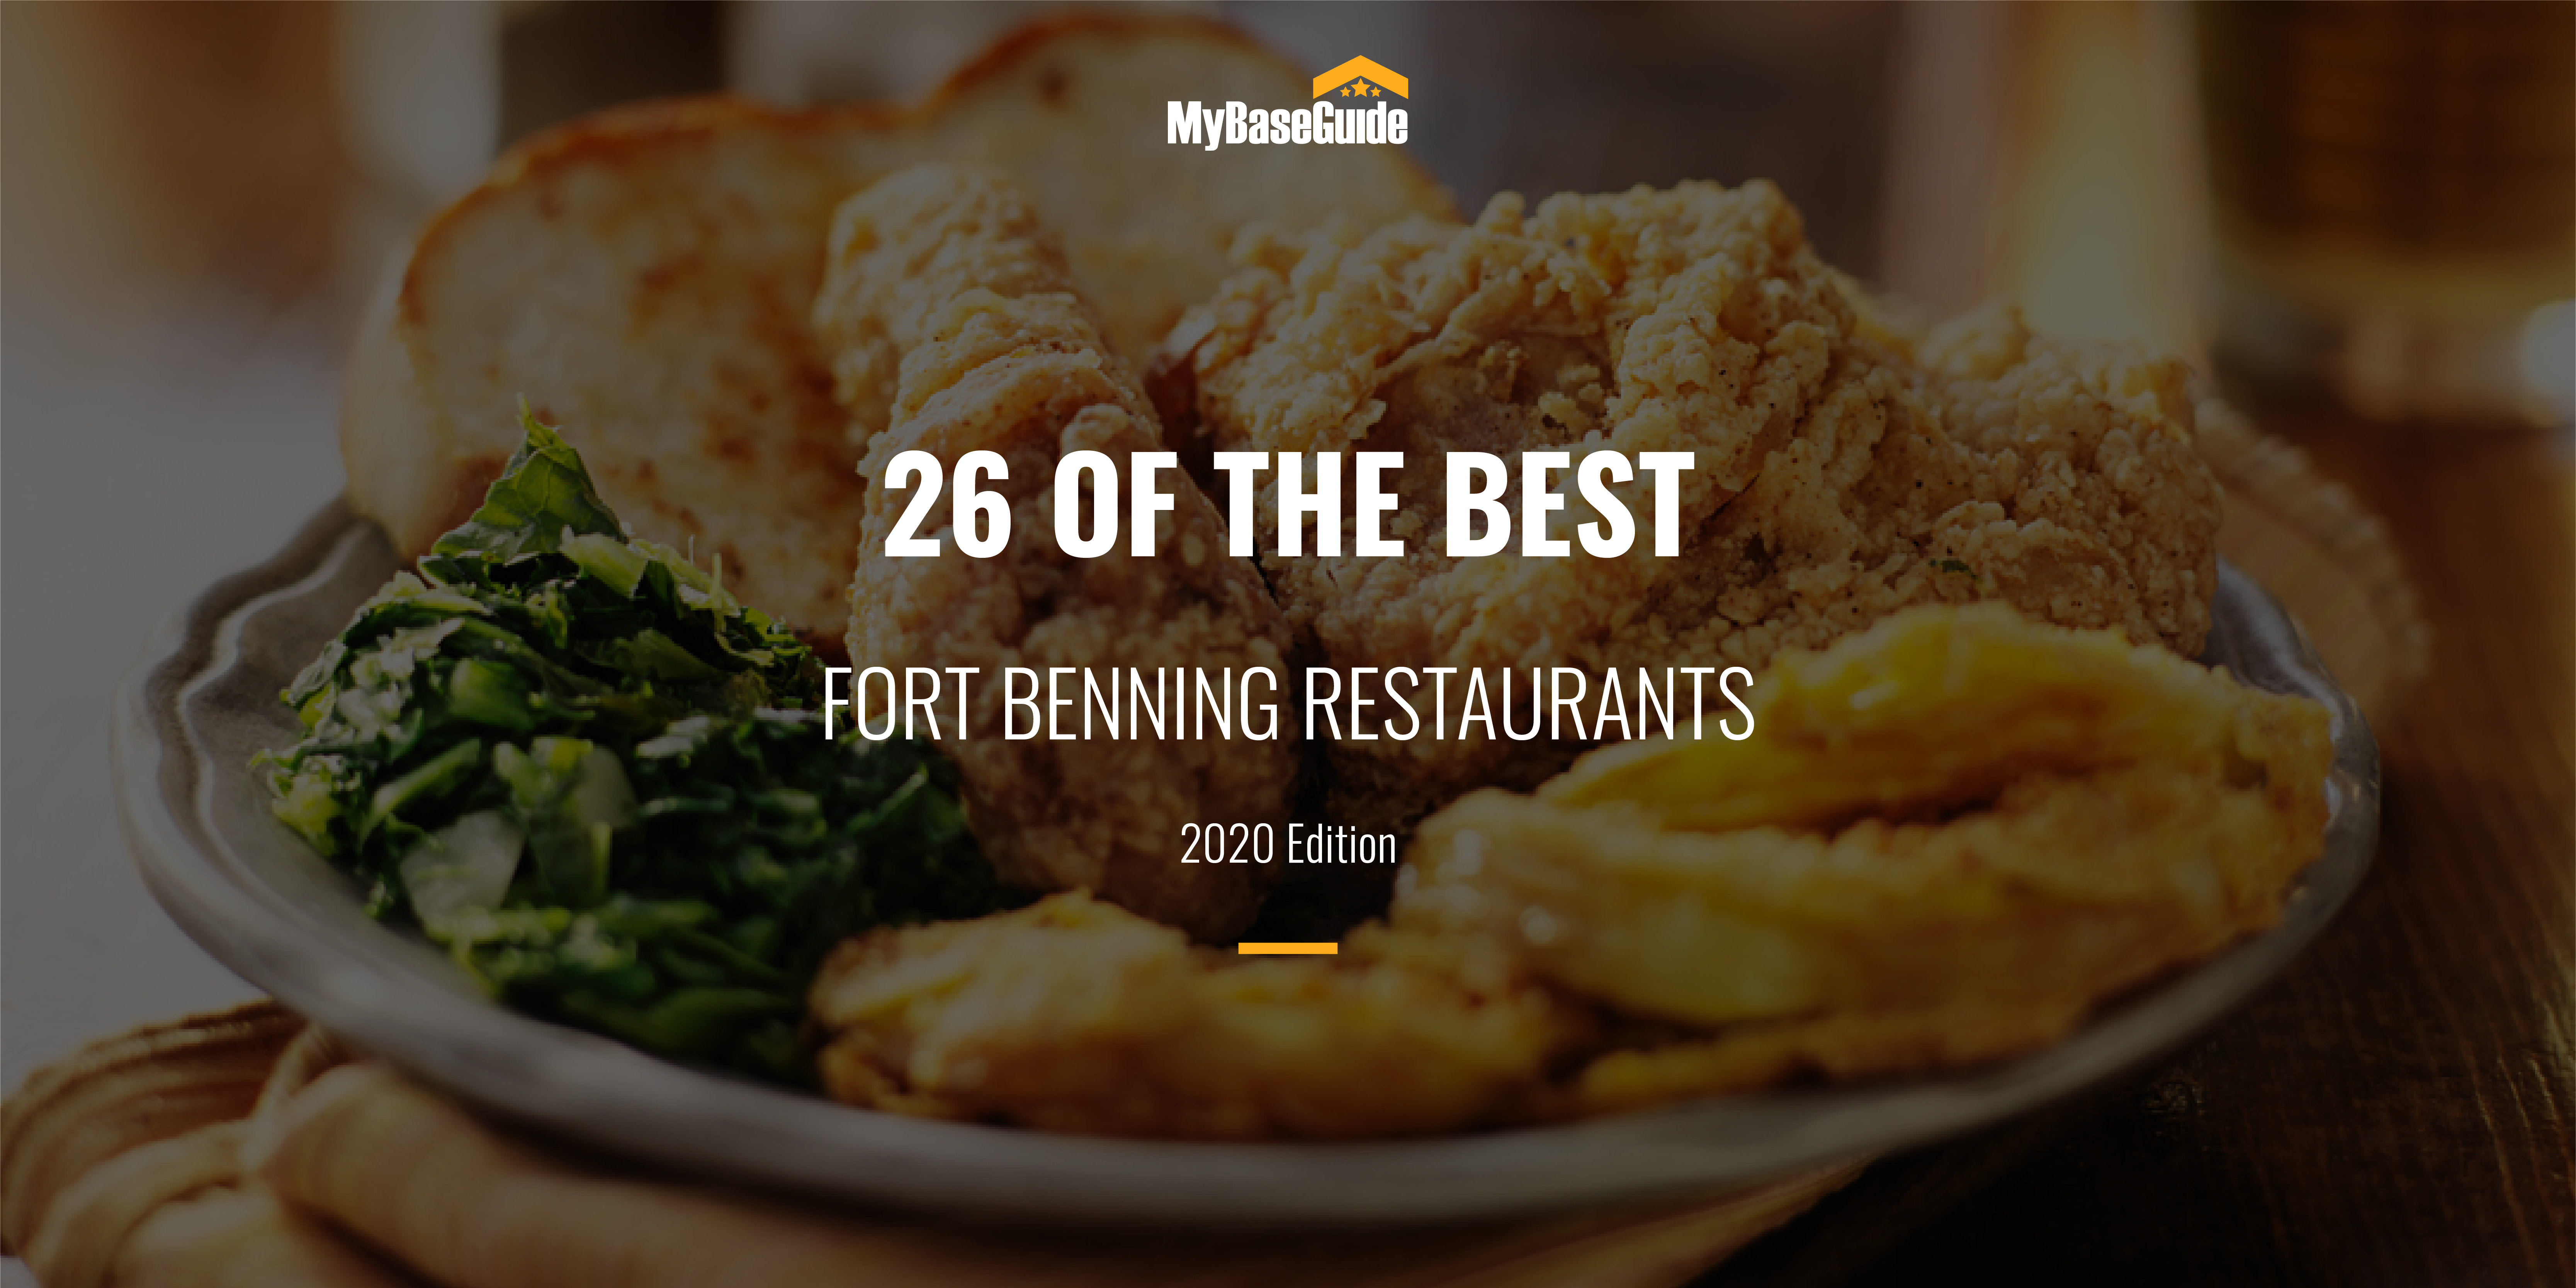 Fort Benning Restaurants